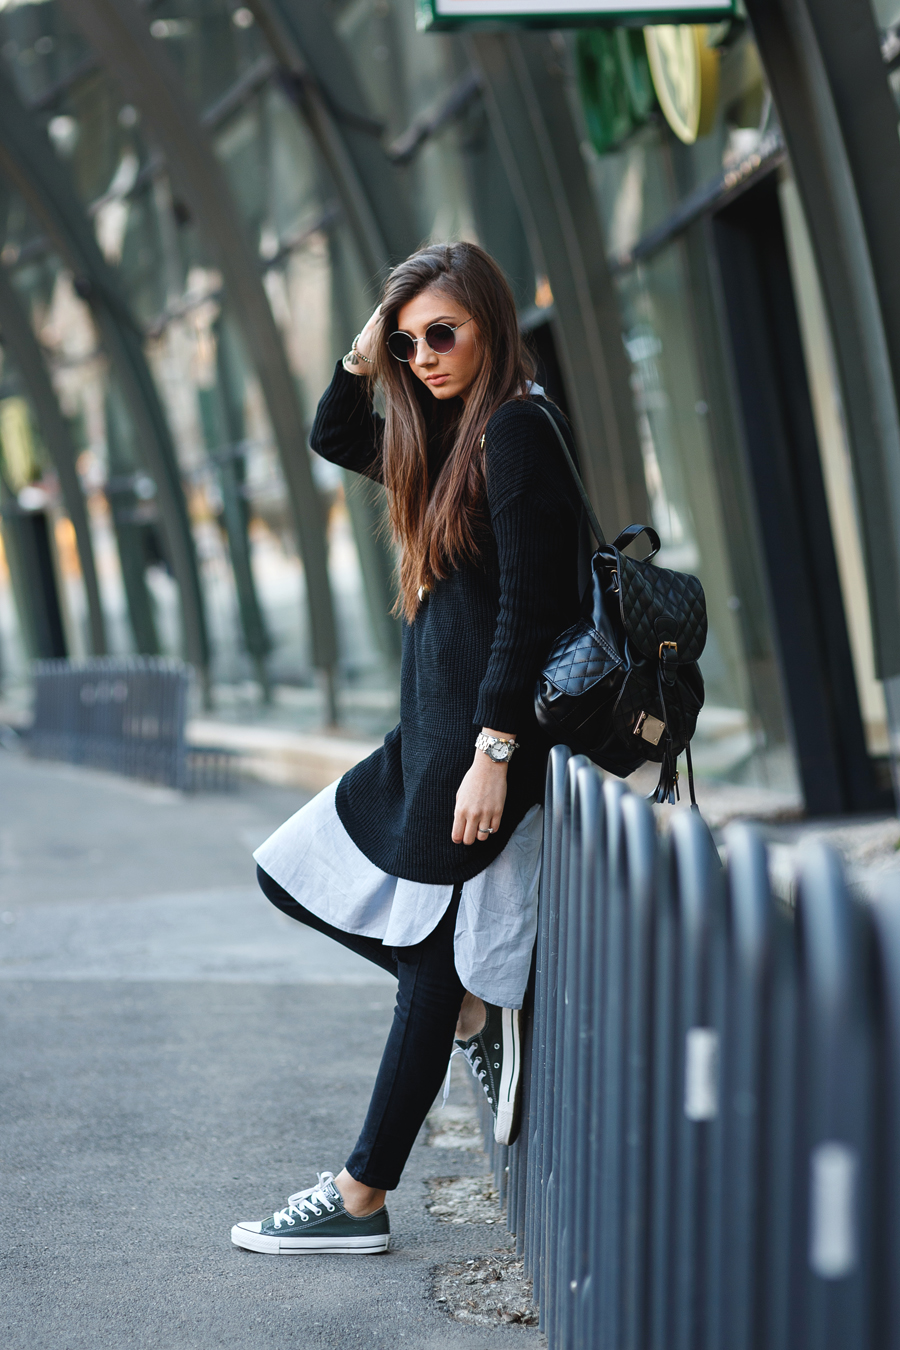 Larisa Costea is wearing a black long sweater, tunic and ripped jeans all from Sheinside, sneakers from Converse and the backpack is from Jadu